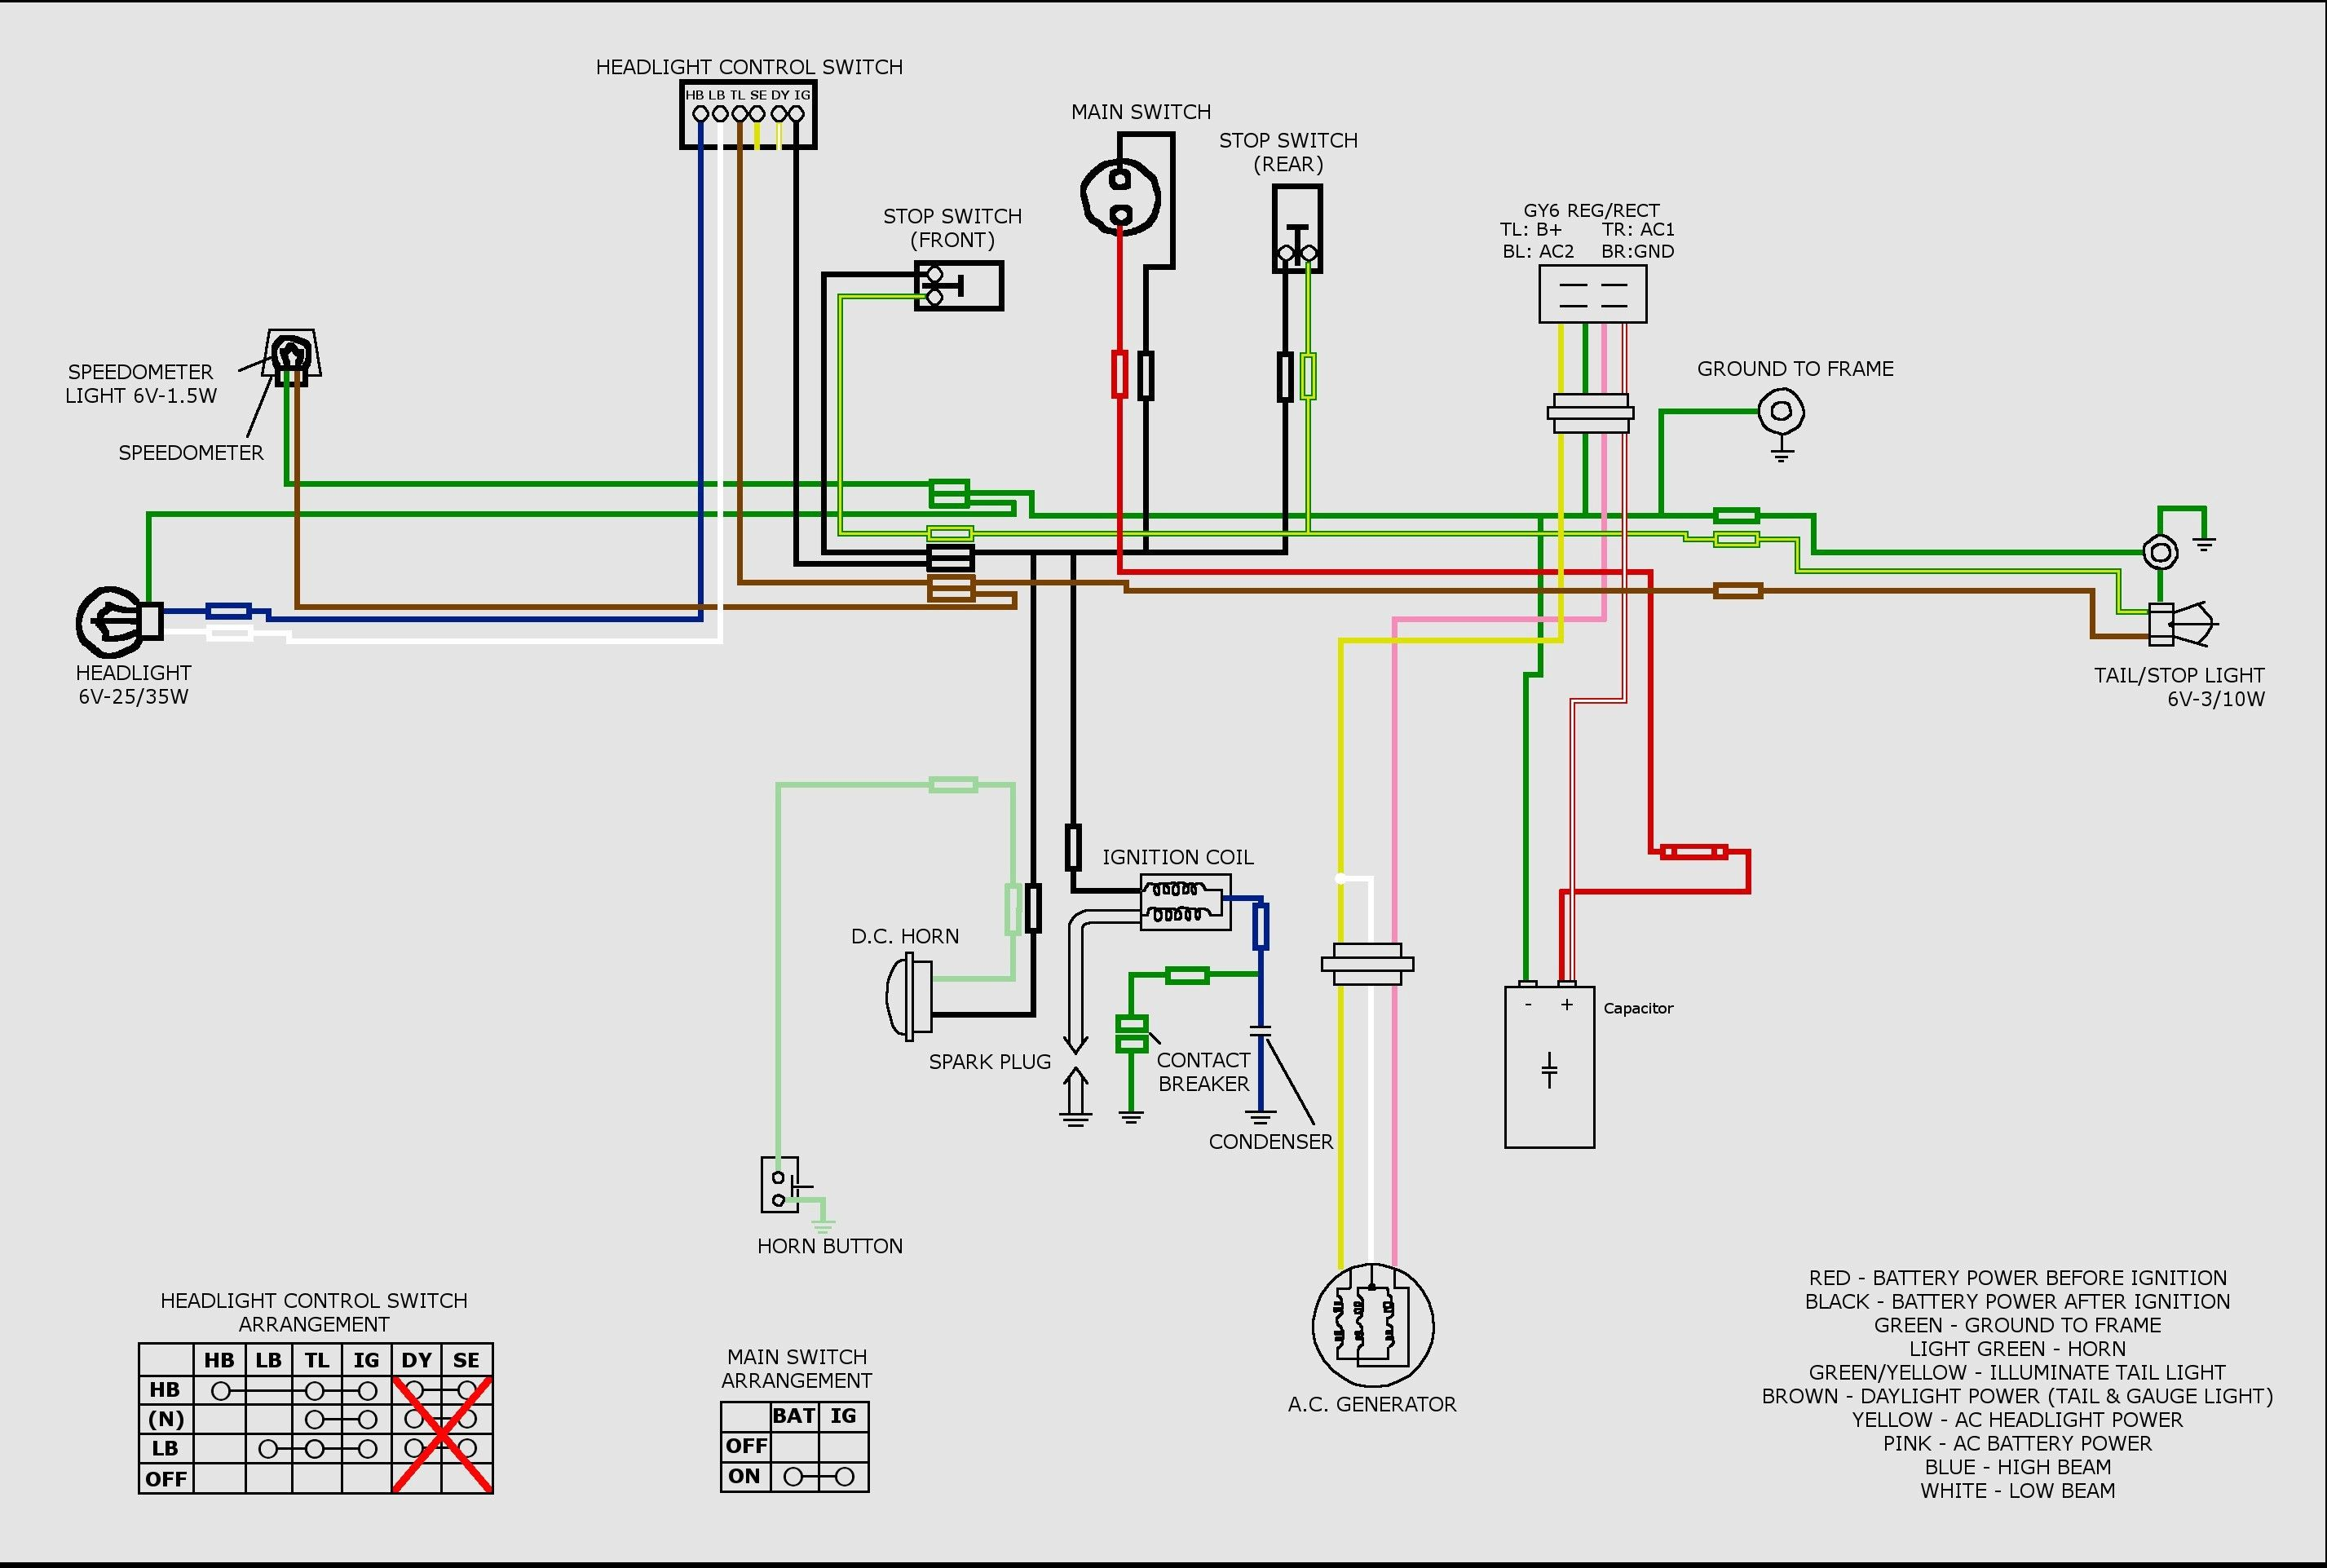 Surprising Gy6 Lighting Diagram Wiring Diagram Data Wiring Digital Resources Spoatbouhousnl